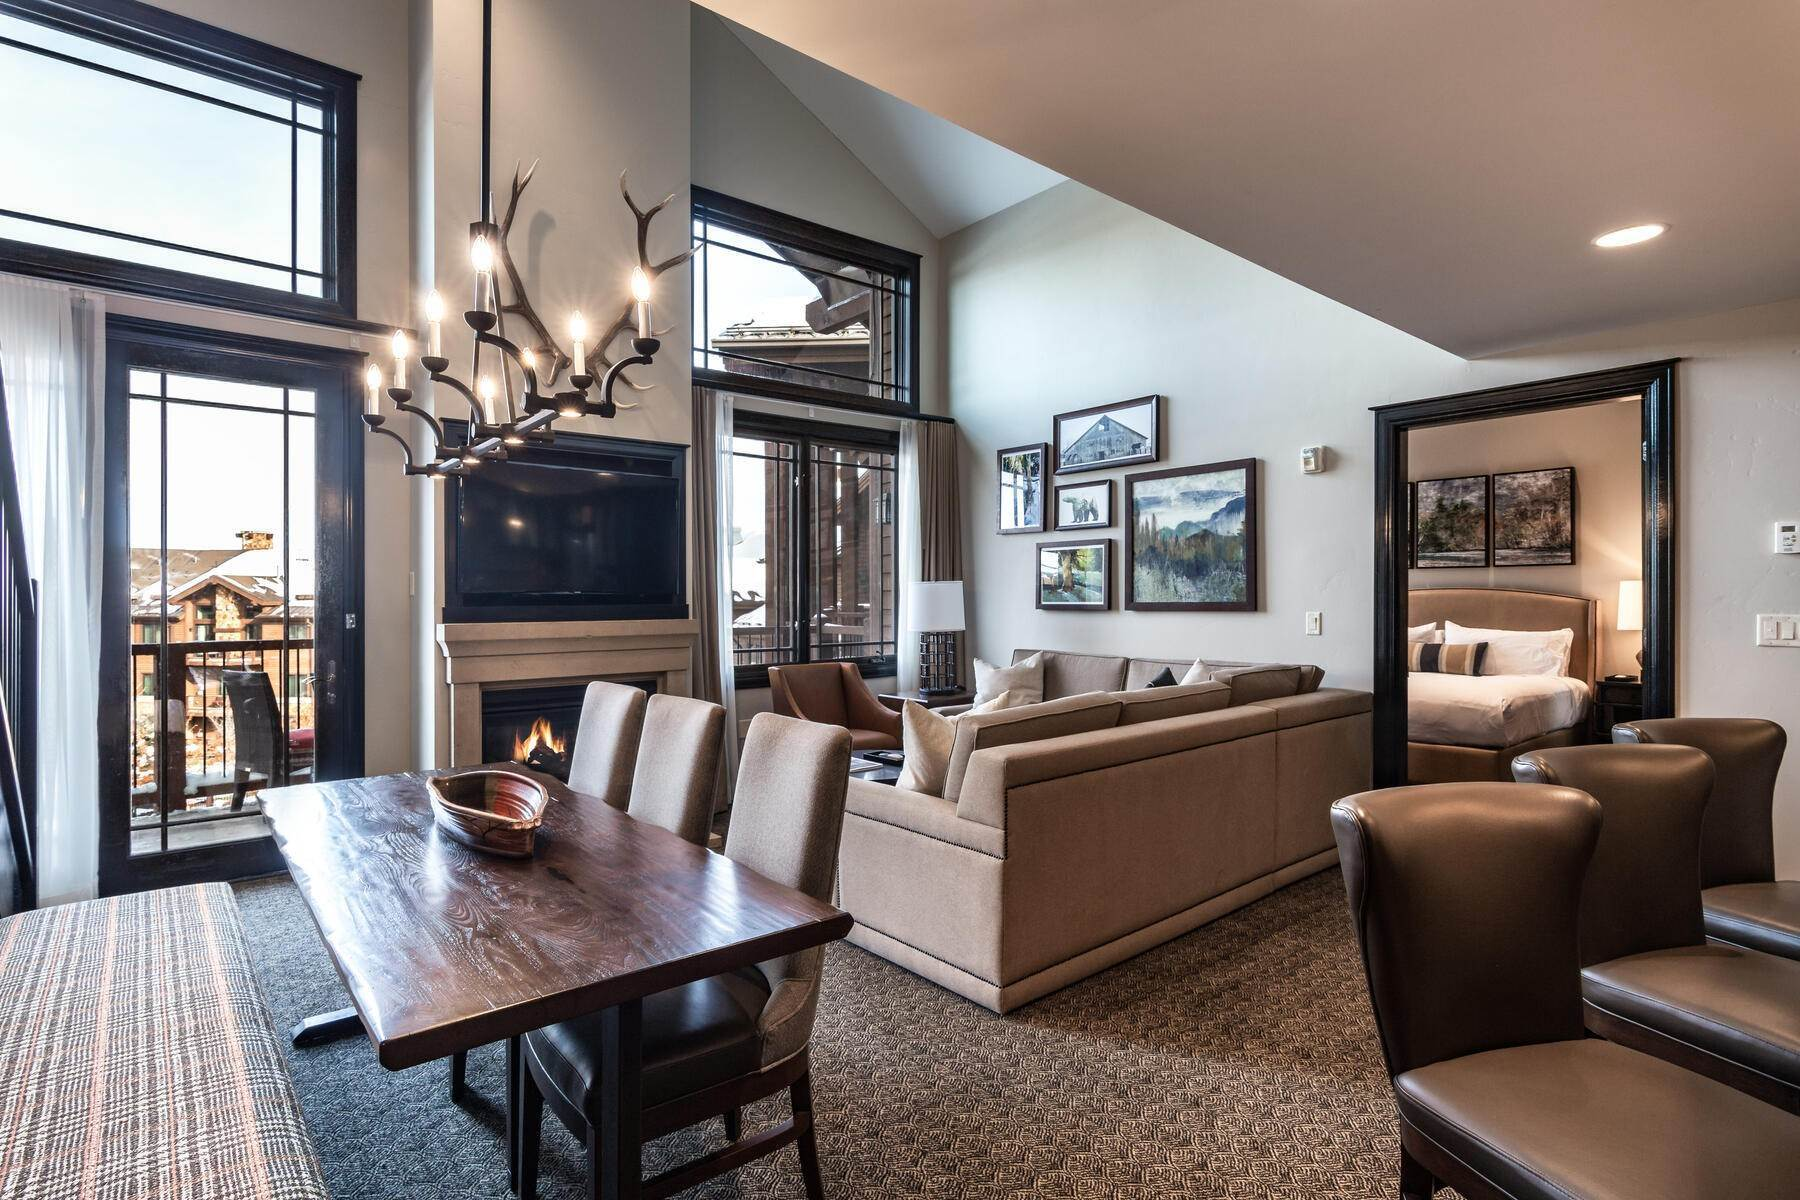 Condominiums للـ Sale في Only 4-Bedroom Available at Waldorf Astoria, Top Floor, Penthouse Unit 2100 W Frostwood Blvd, #7117 Park City, Utah 84098 United States